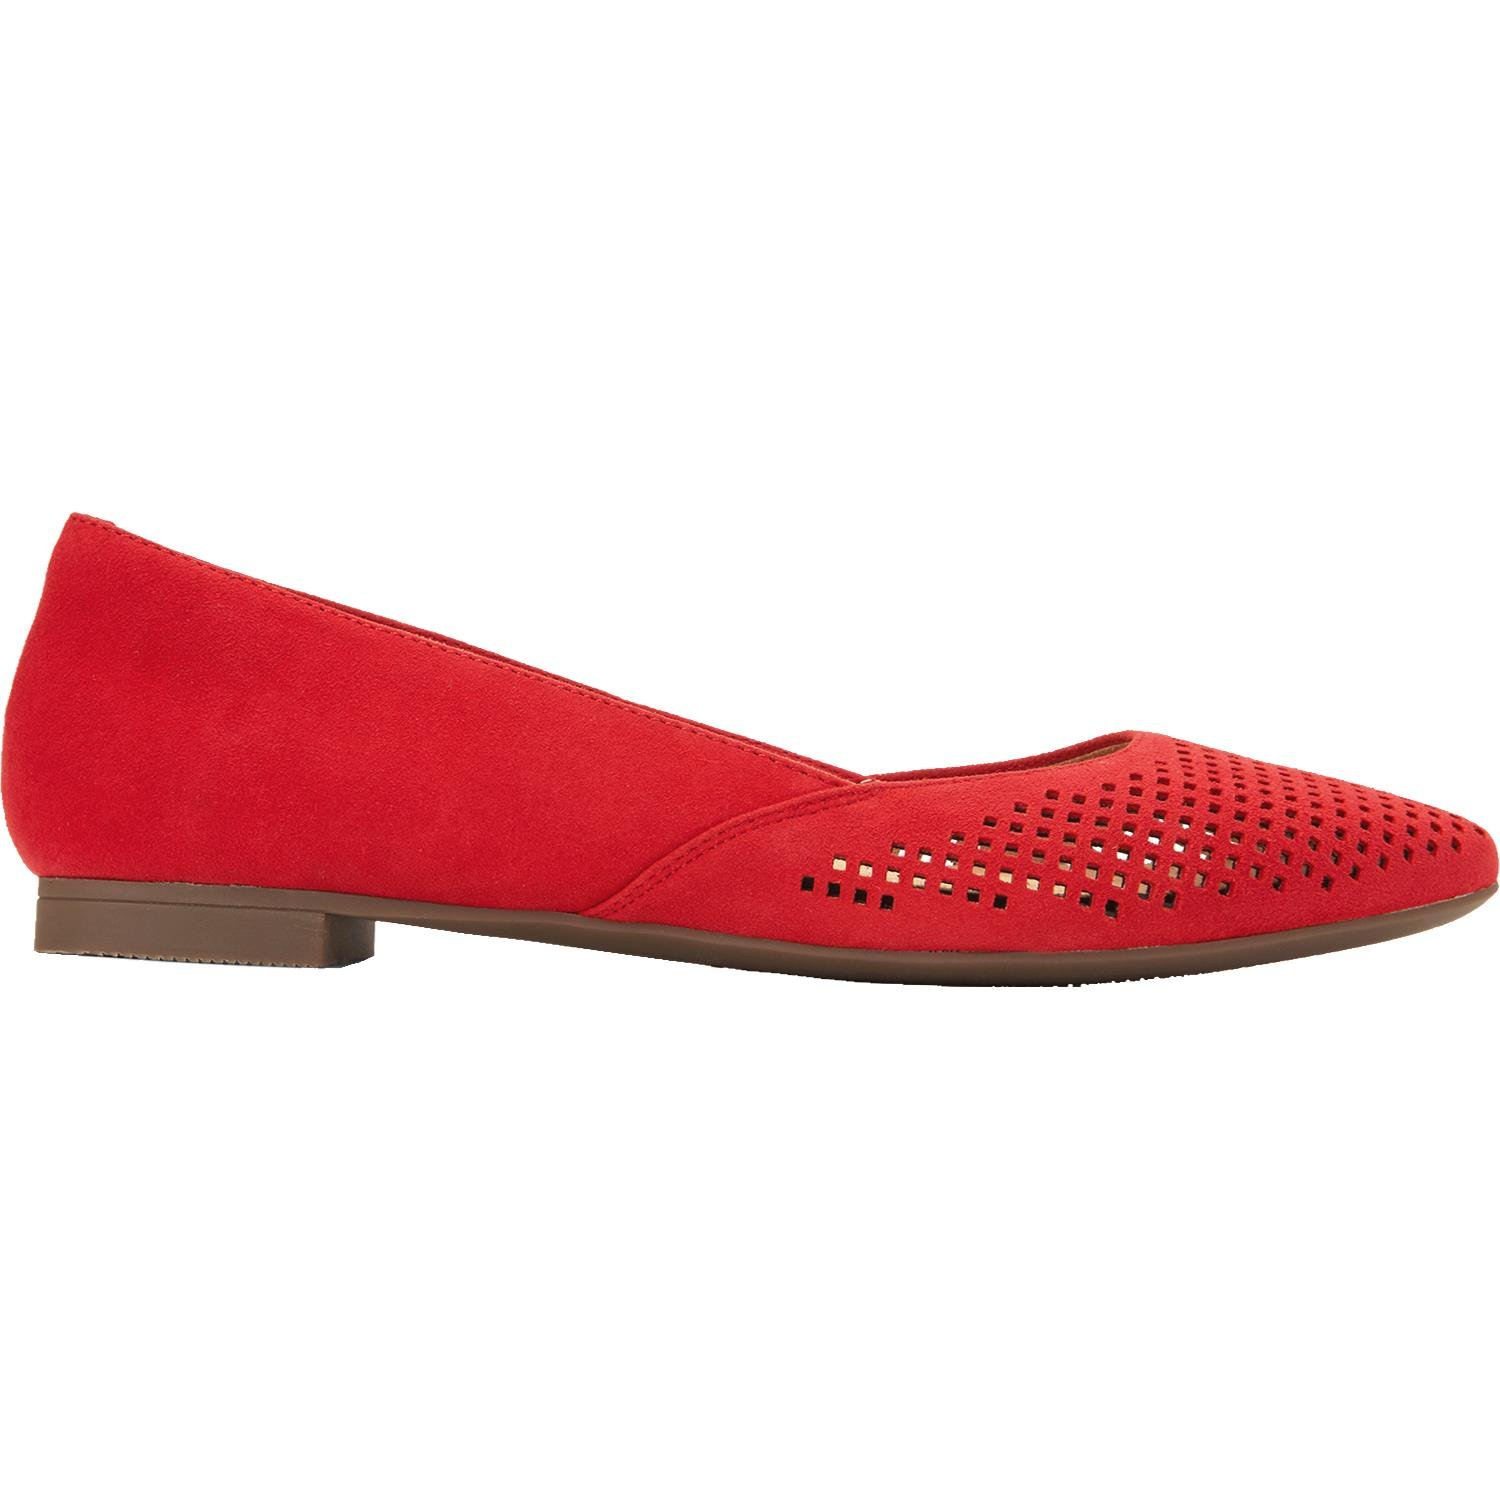 Vionic Womens Gem Posey Ballet Flat, Red, Size 8 by Vionic